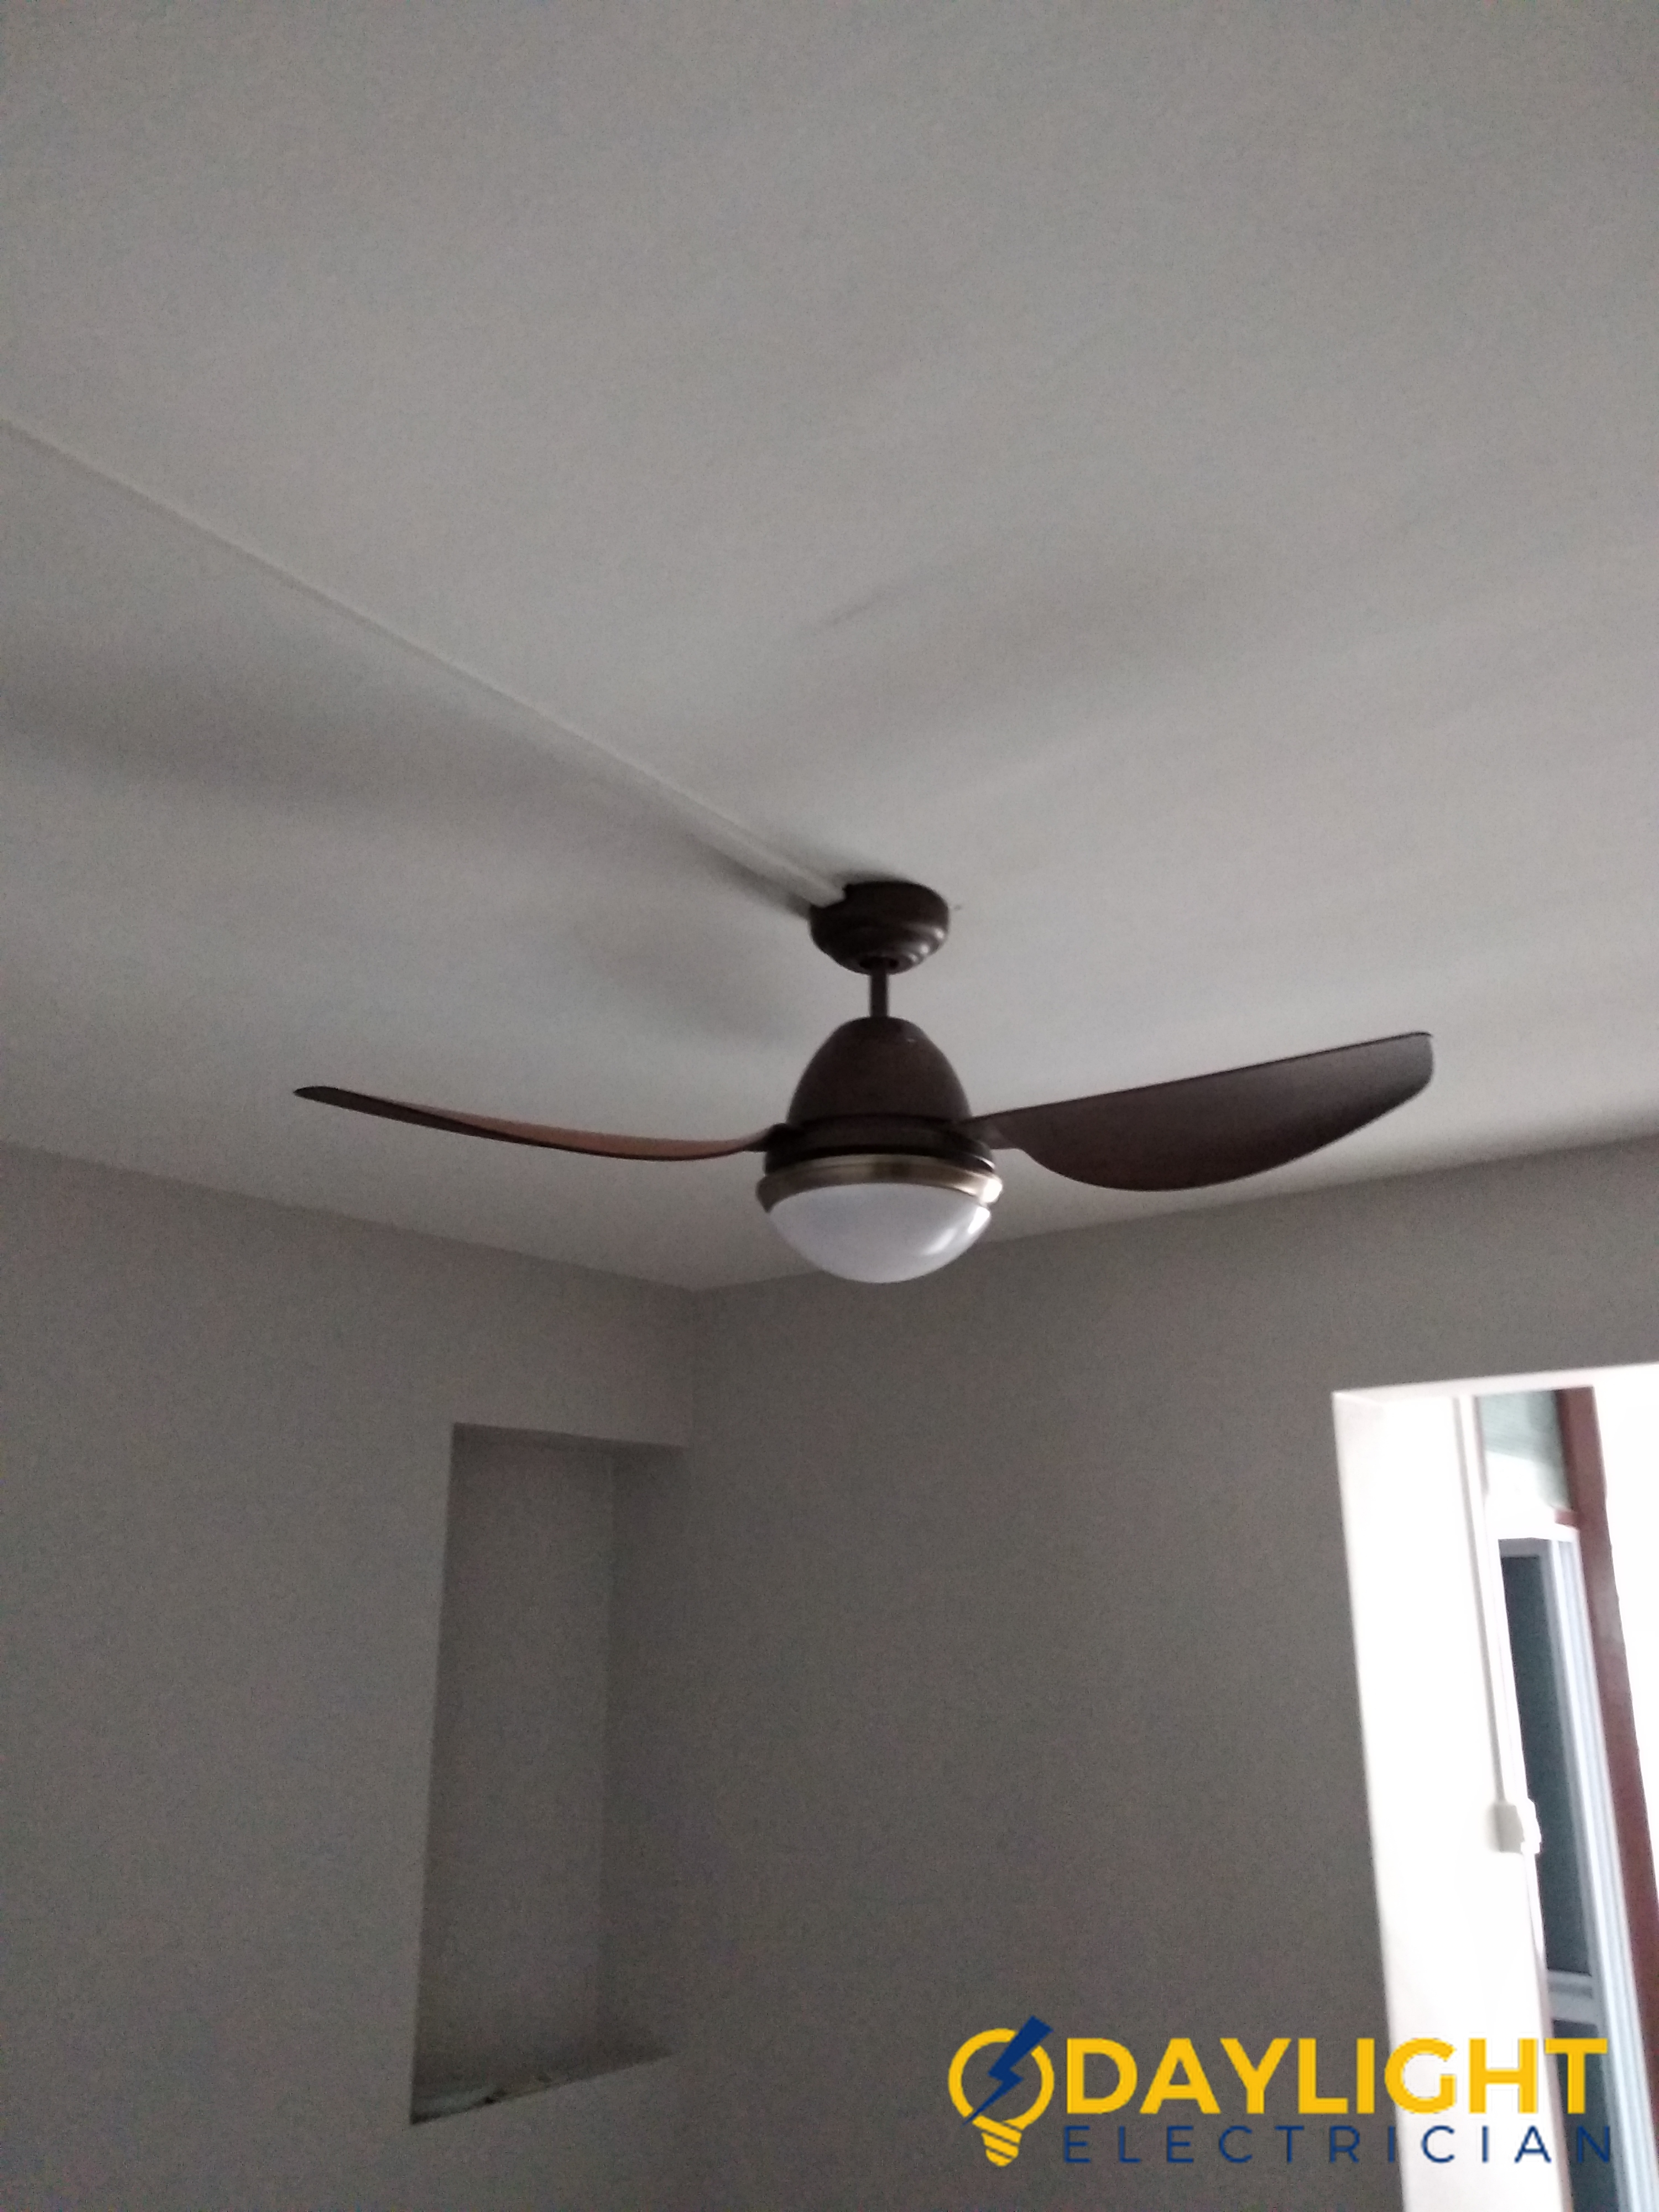 ceiling-fan-installation-service-daylight-electrician-singapore-Condo-bukit-timah_wm